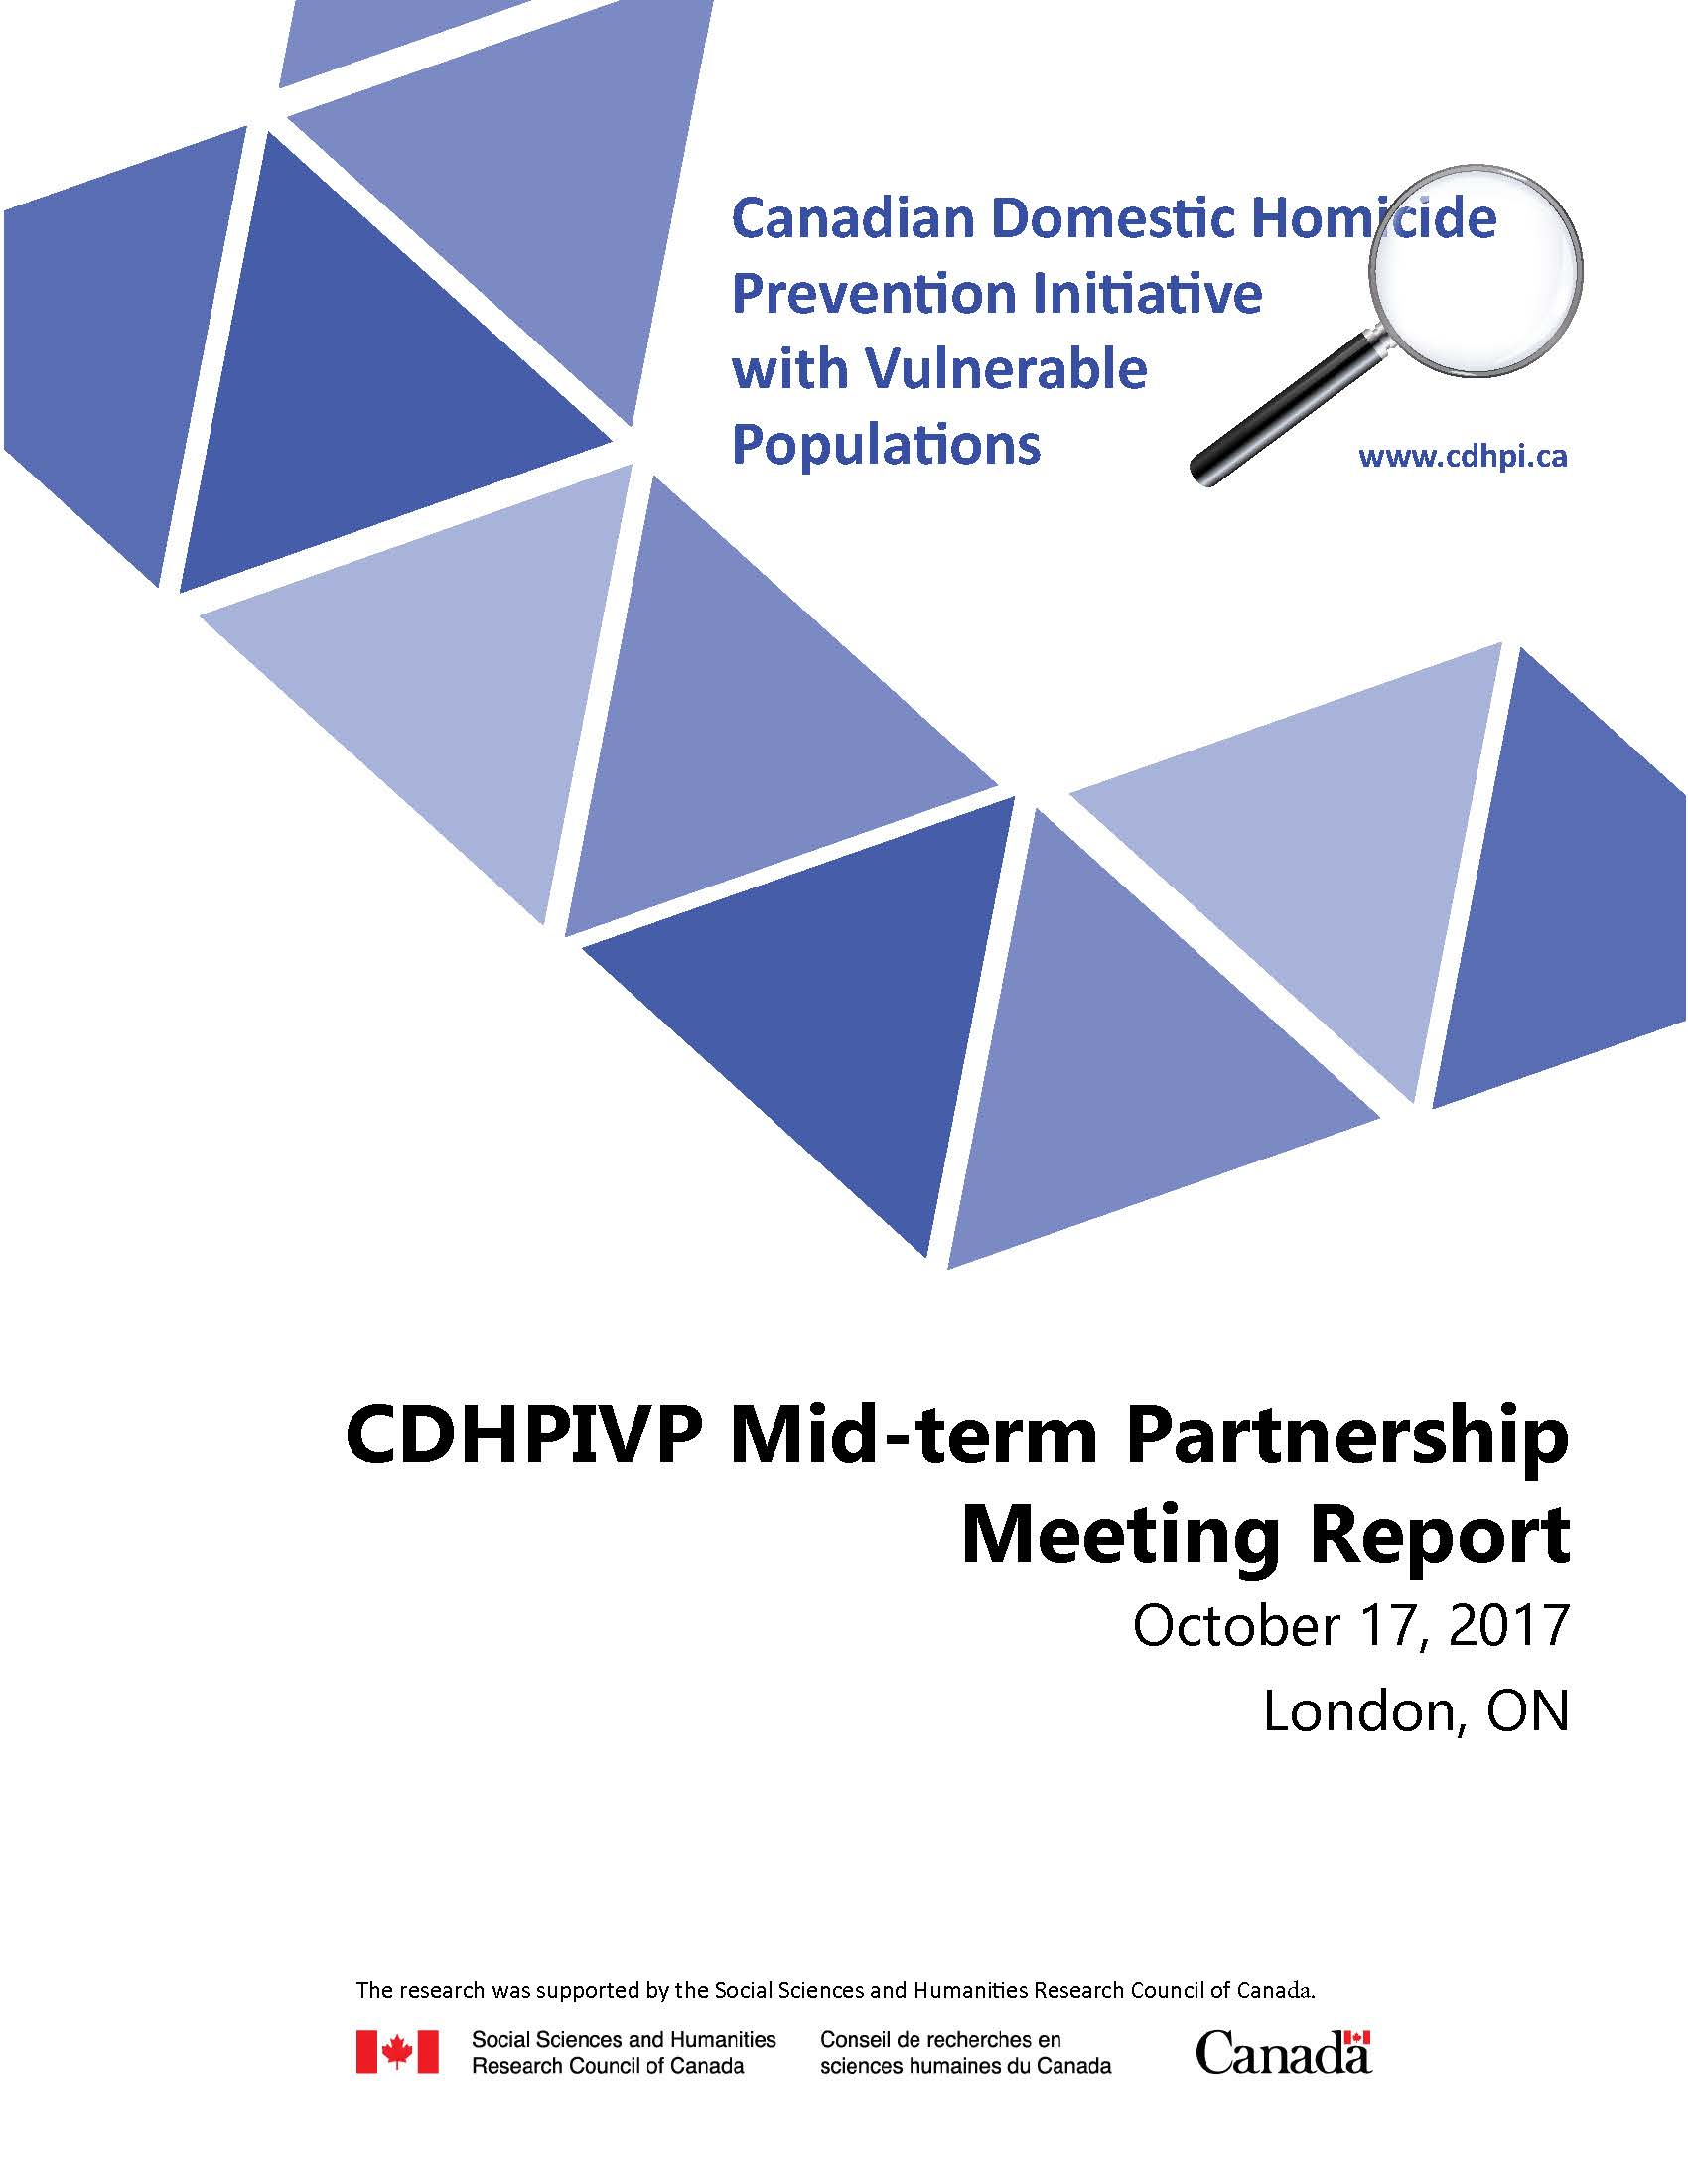 Partnership Report Cover page